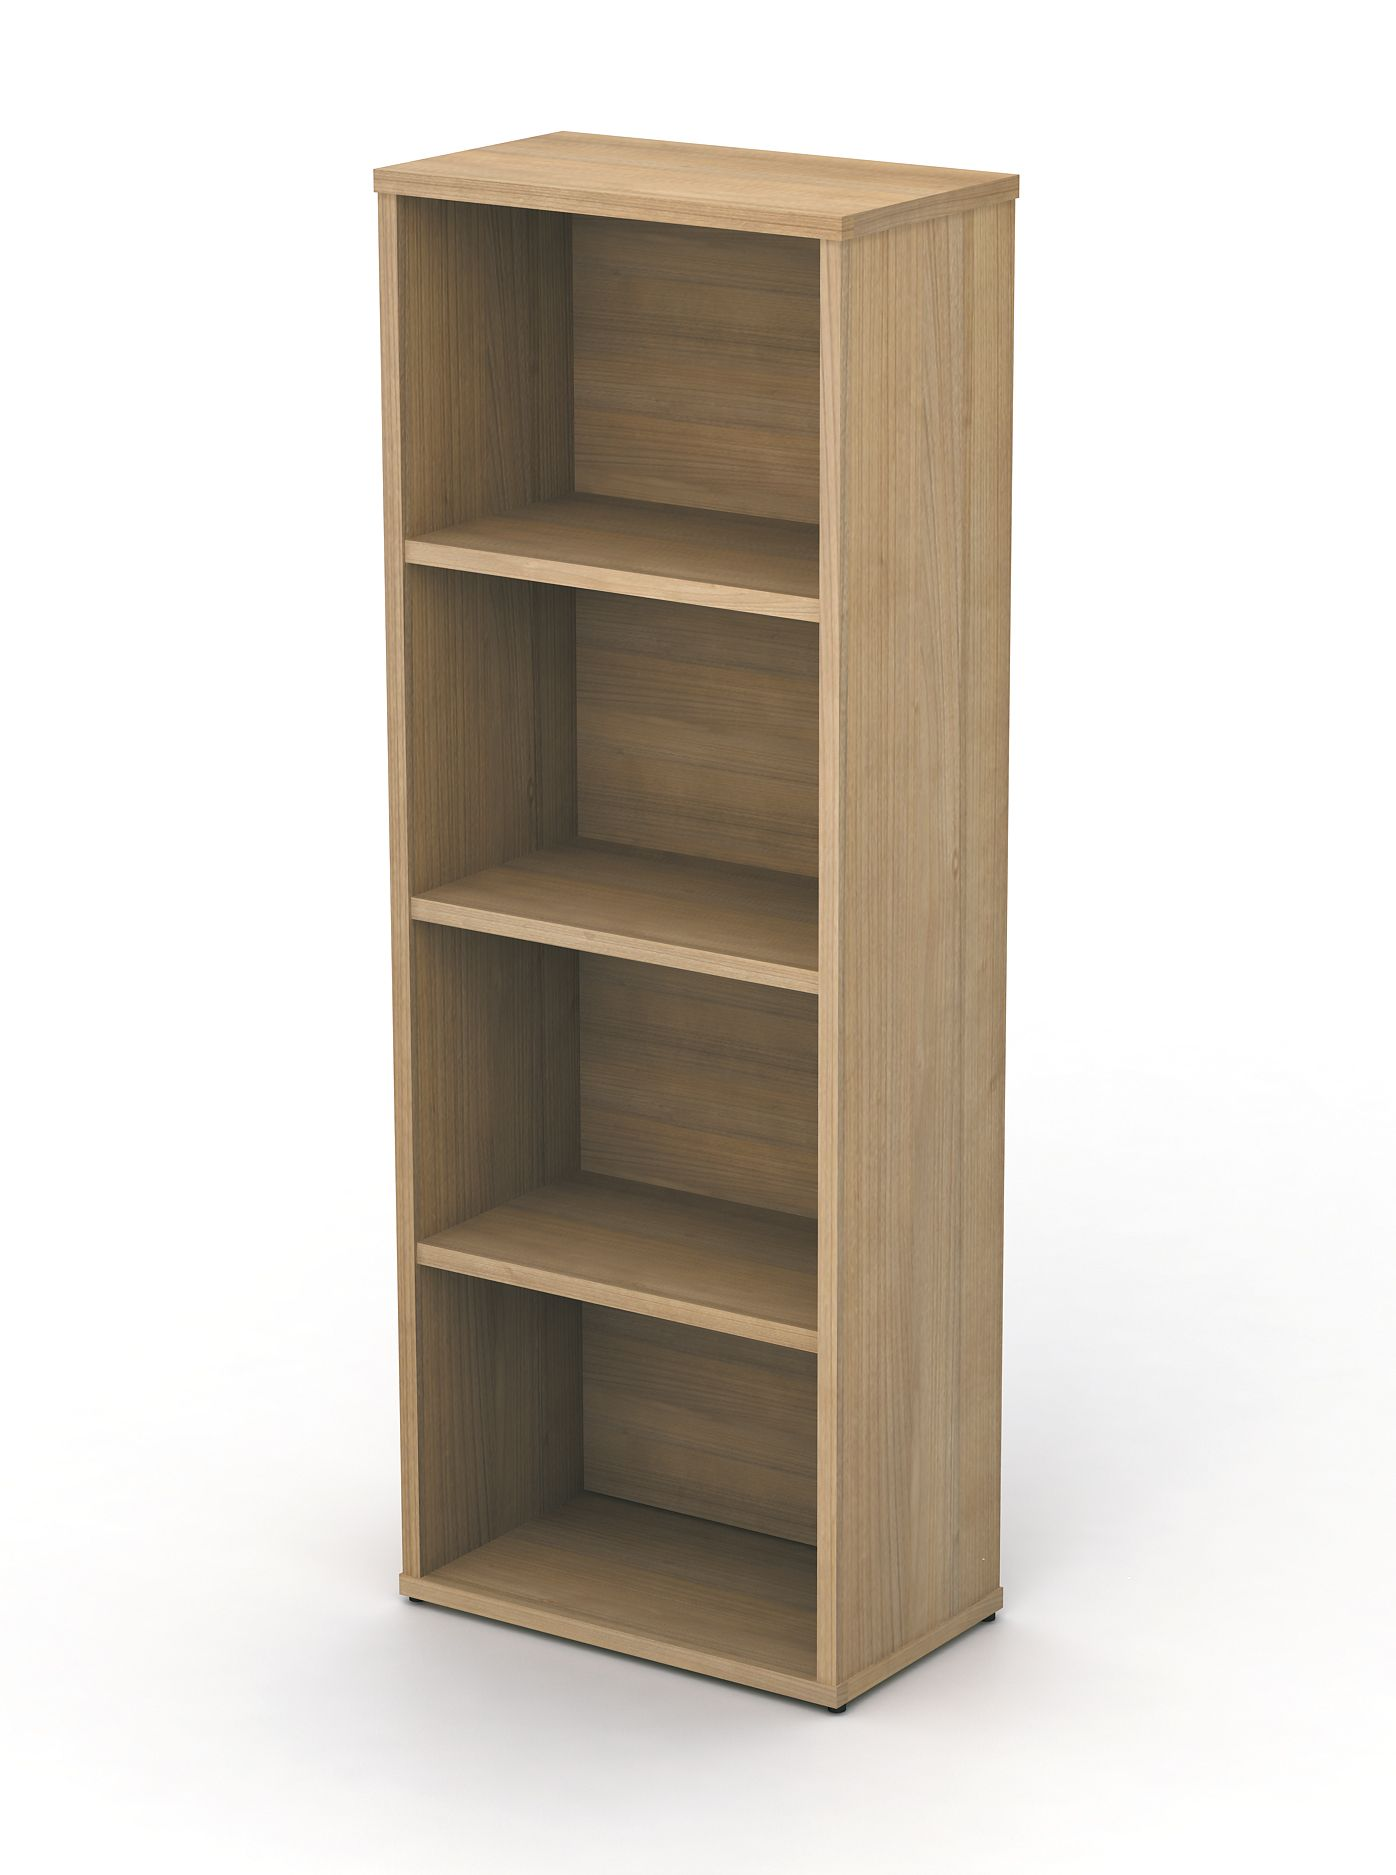 narrow bookcase avalon plus 725mm high 1 shelf online reality. Black Bedroom Furniture Sets. Home Design Ideas